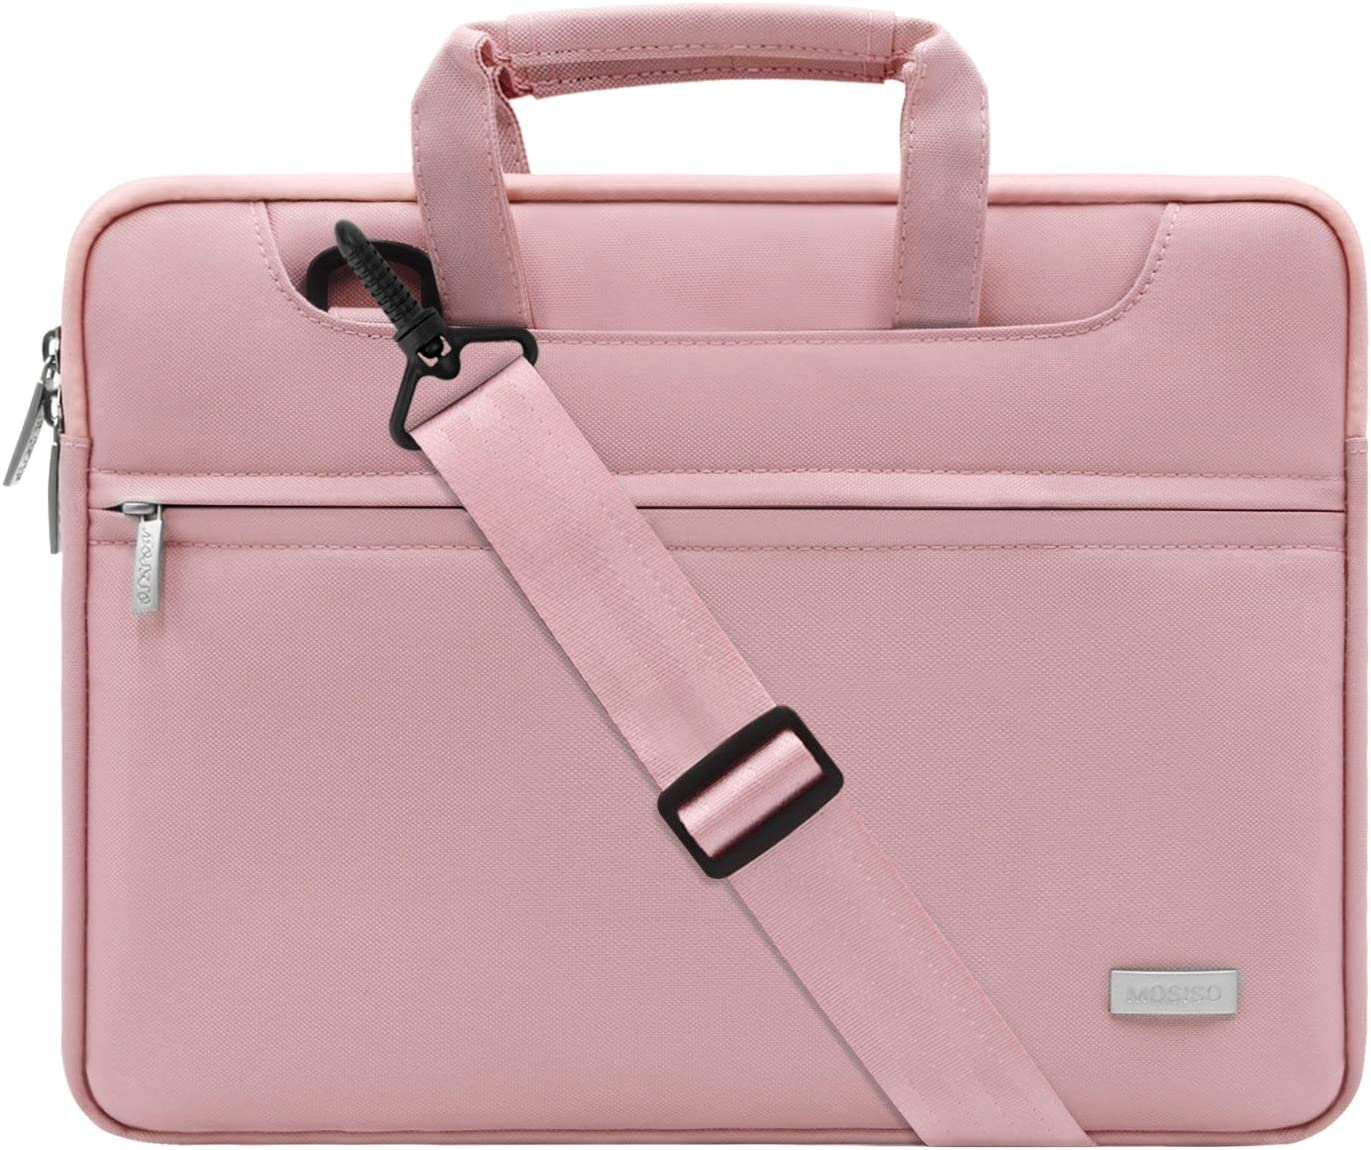 MOSISO Laptop Shoulder Bag Compatible with 13-13.3 inch MacBook Pro, MacBook Air, Notebook Computer, Polyester Sleeve with Back Trolley Belt, Pink